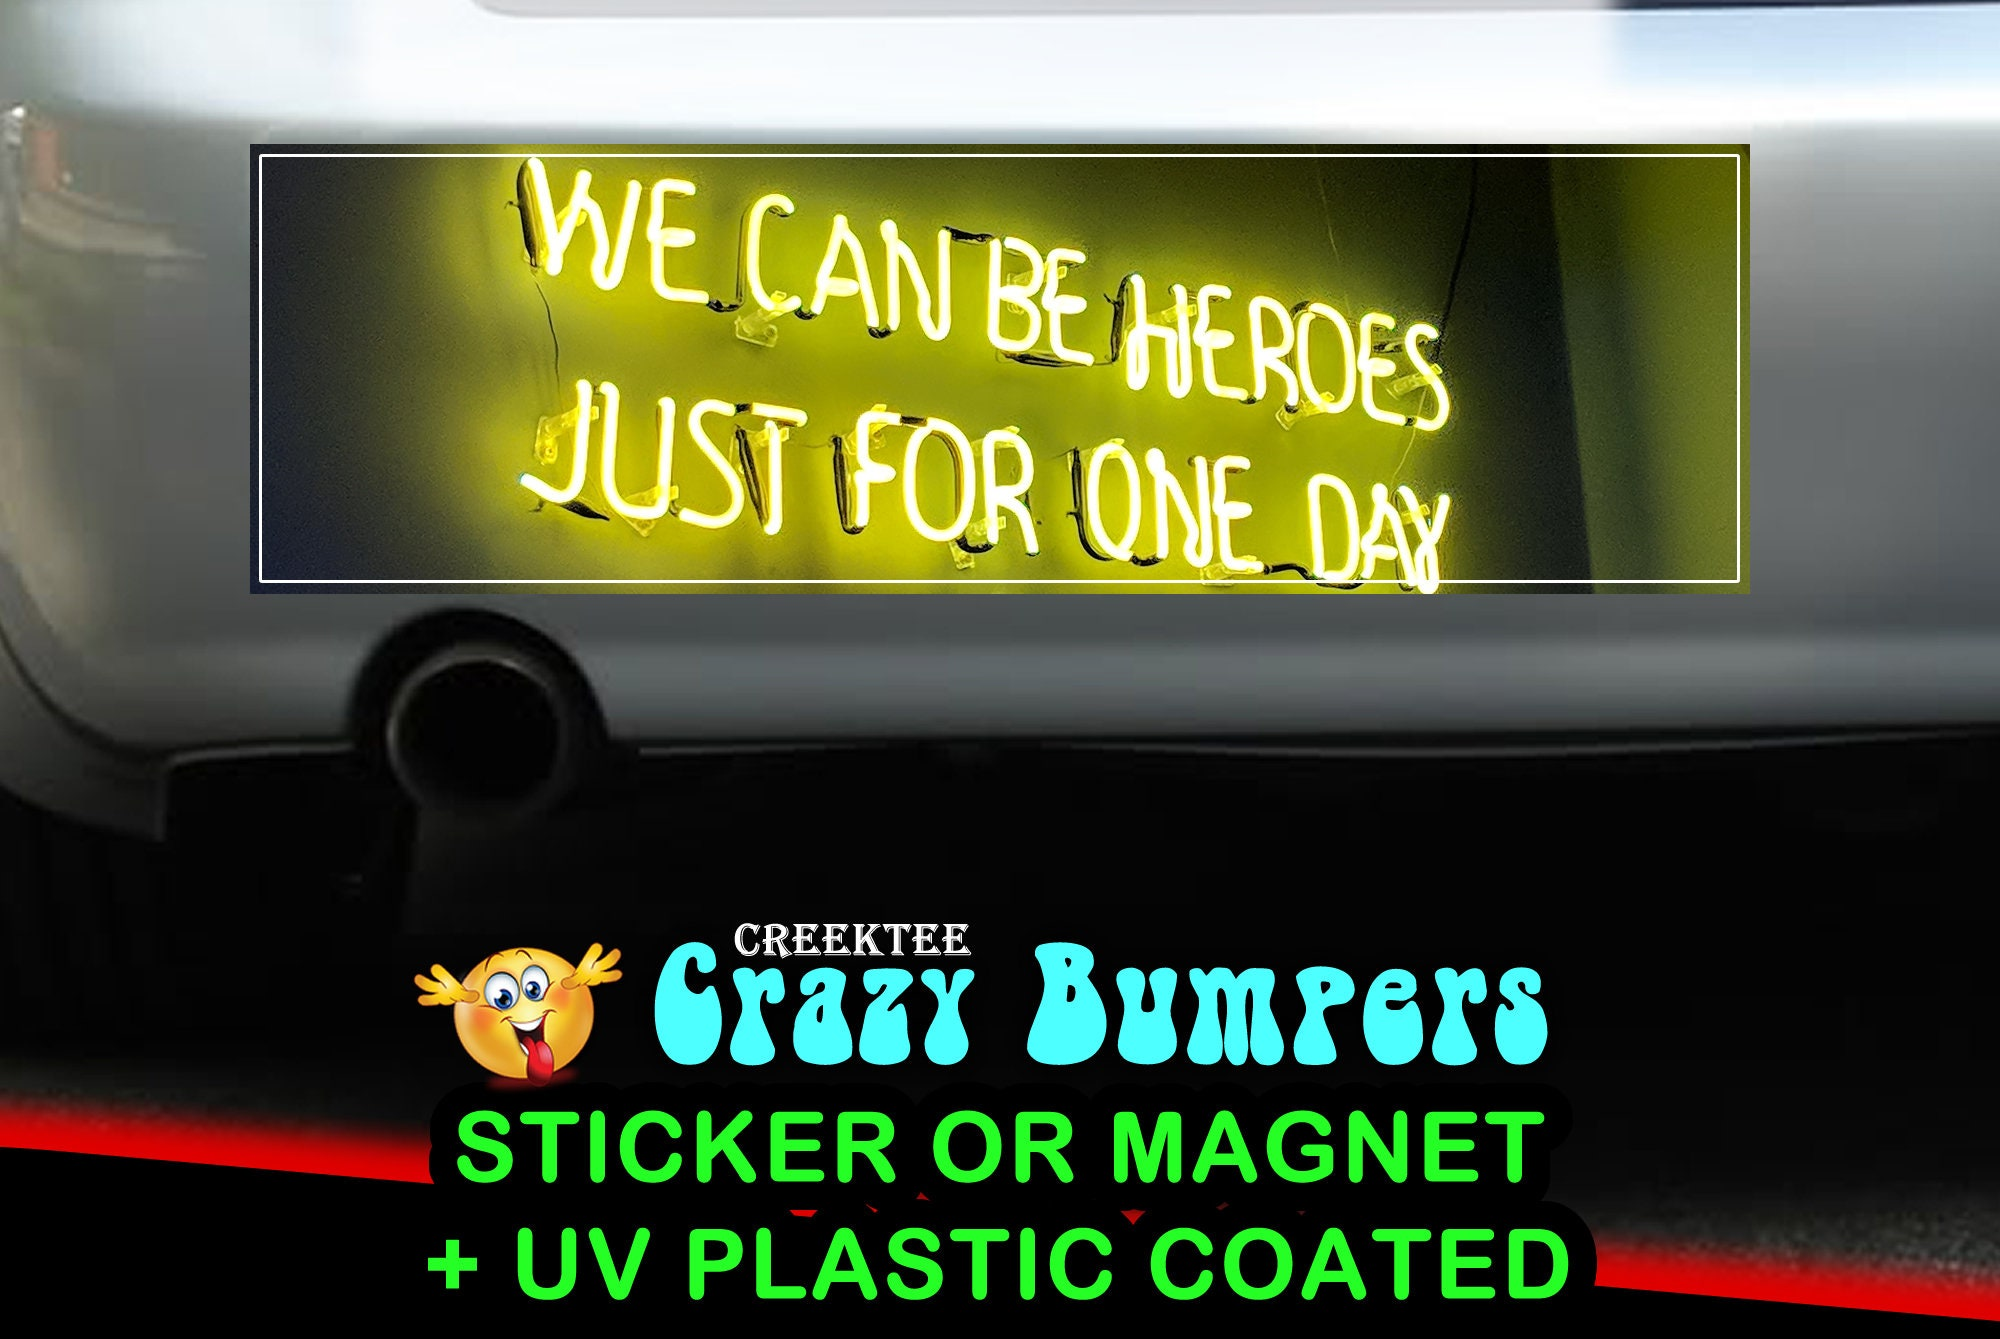 CAD$9.74 - We can be heroes just for one day 10 x 3 Bumper Sticker or Magnet - Custom changes and orders welcomed!